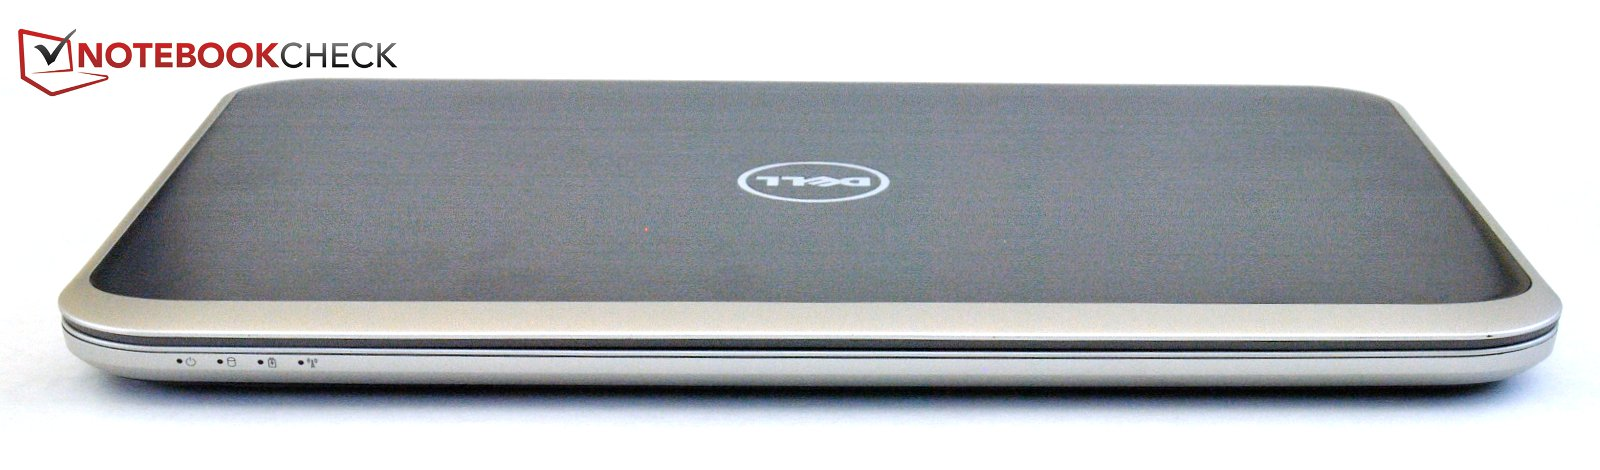 DELL INSPIRON 14Z 5423 NOTEBOOK INTEL SMART CONNECT TECHNOLOGY DRIVER FOR WINDOWS 8